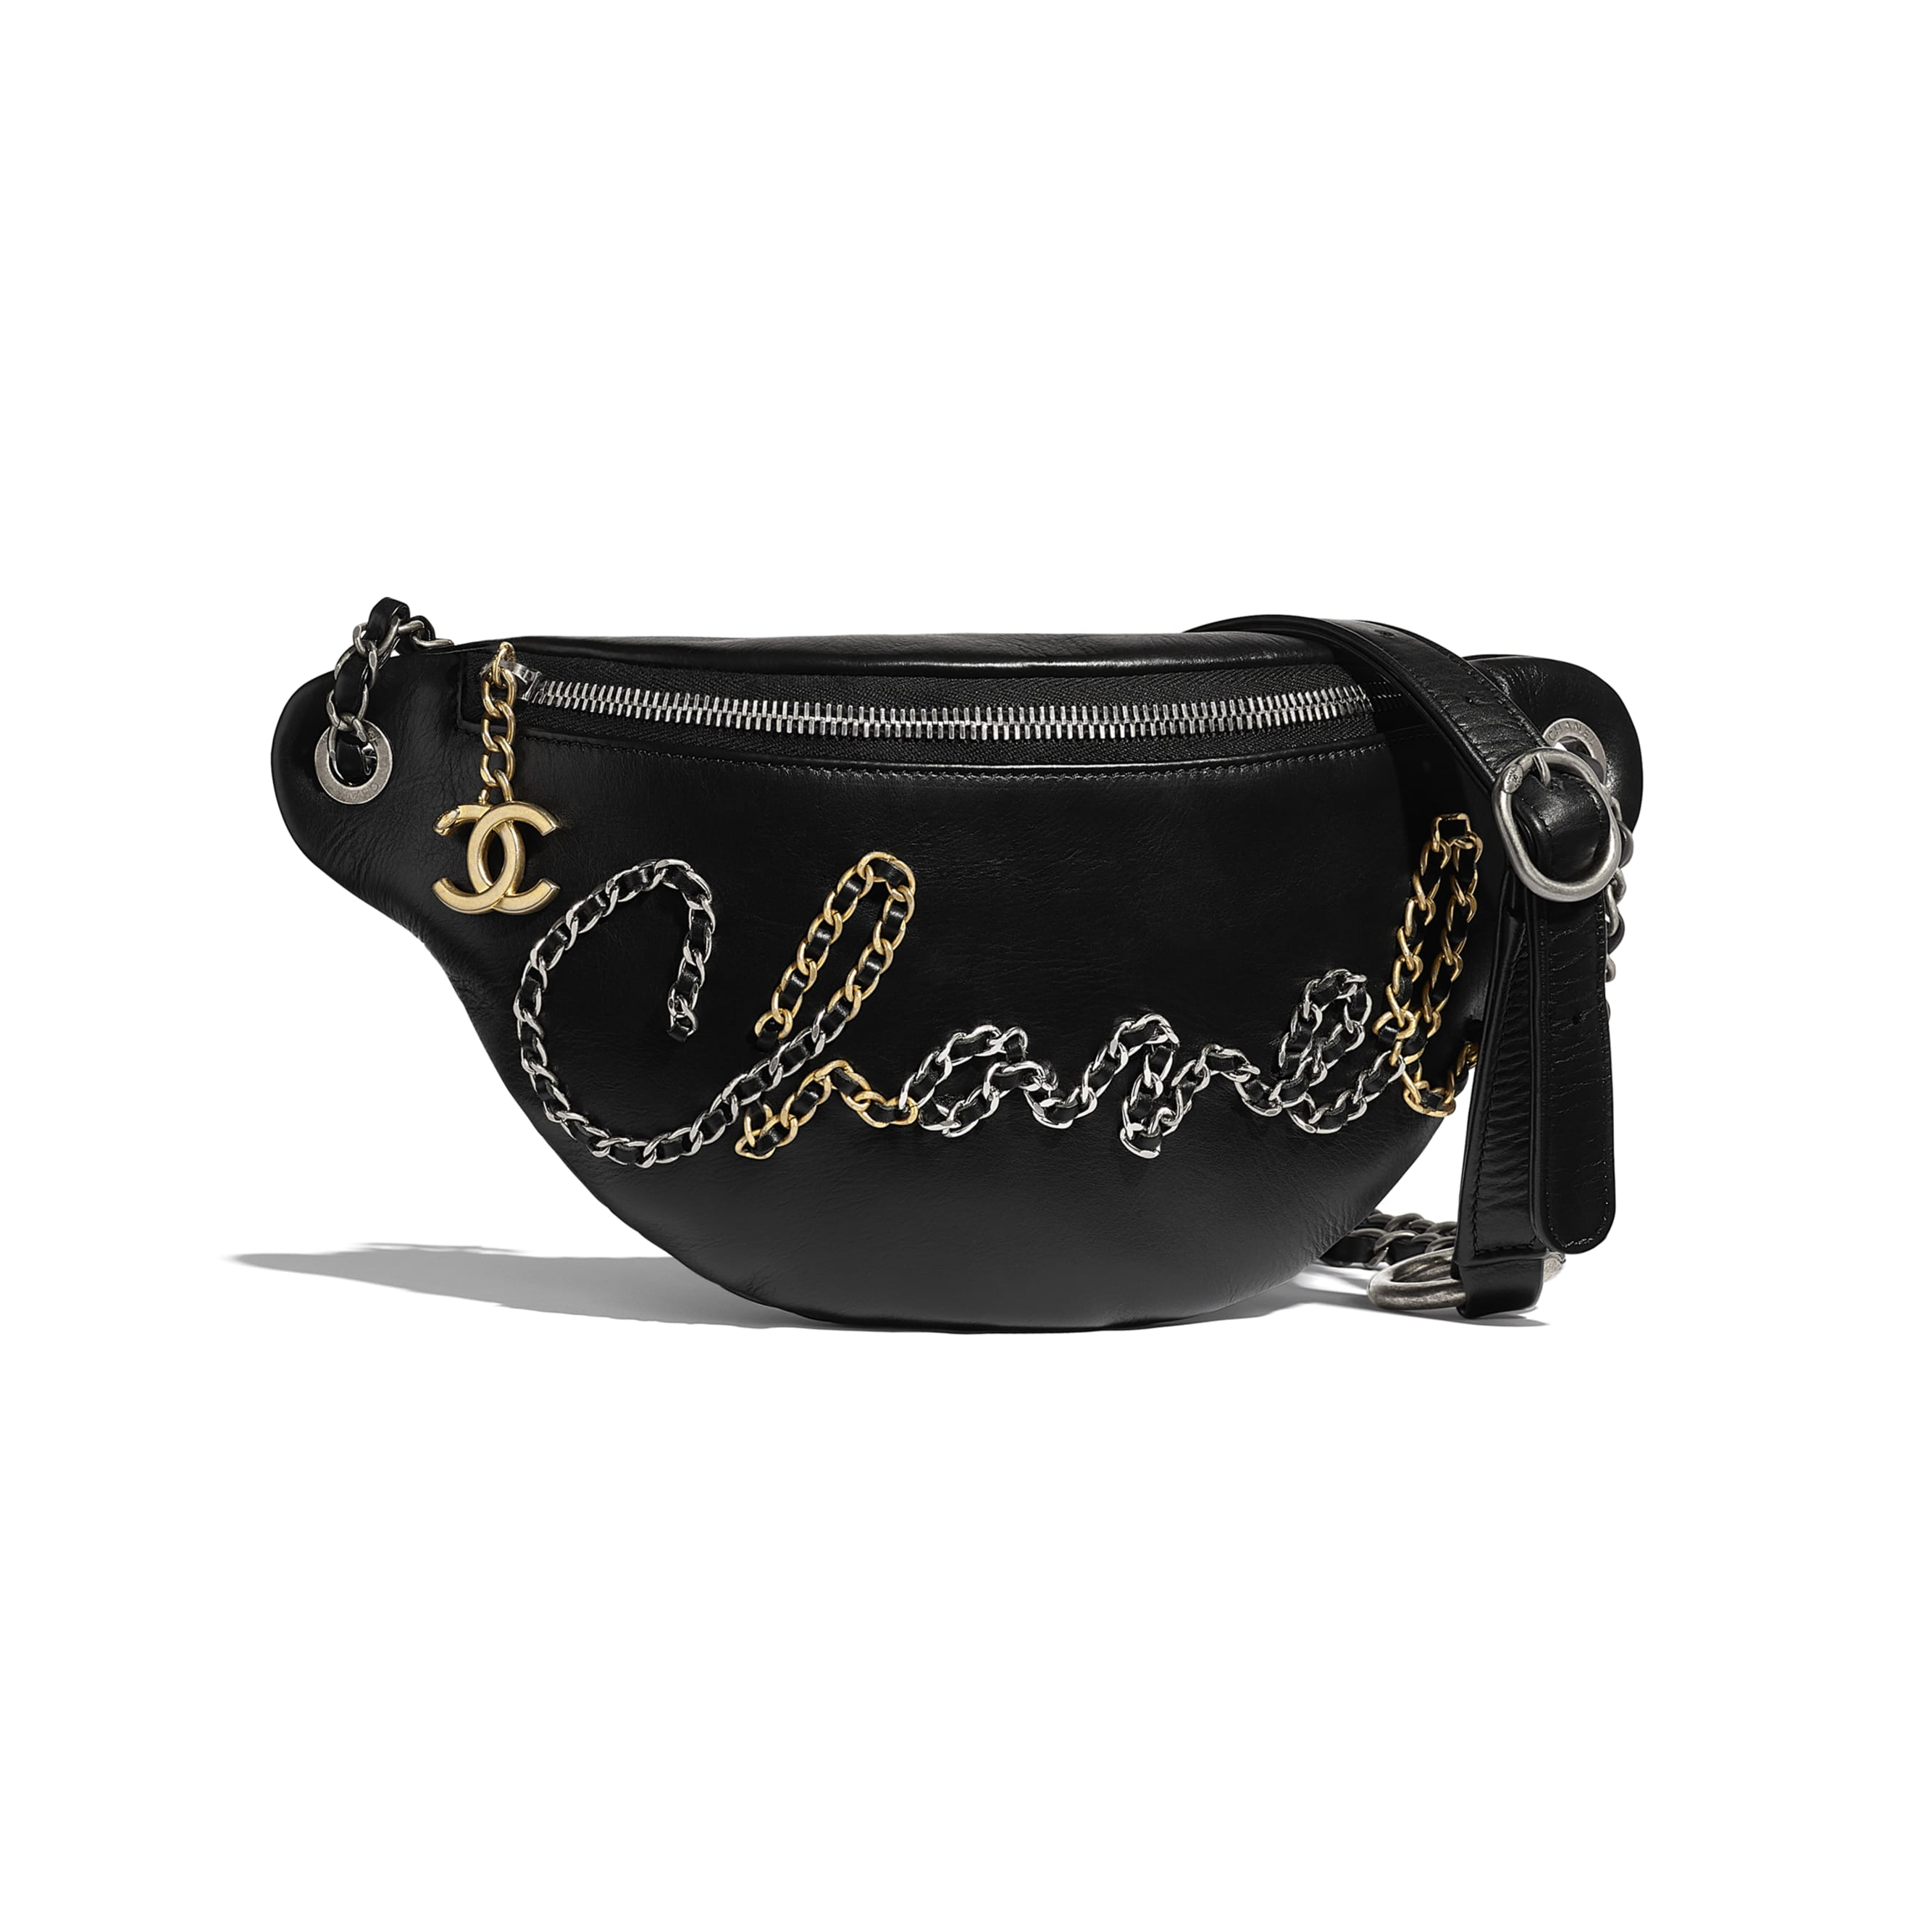 Waist Bag - Black - Calfskin, Gold-Tone, Silver-Tone & Ruthenium-Finish Metal - Default view - see standard sized version